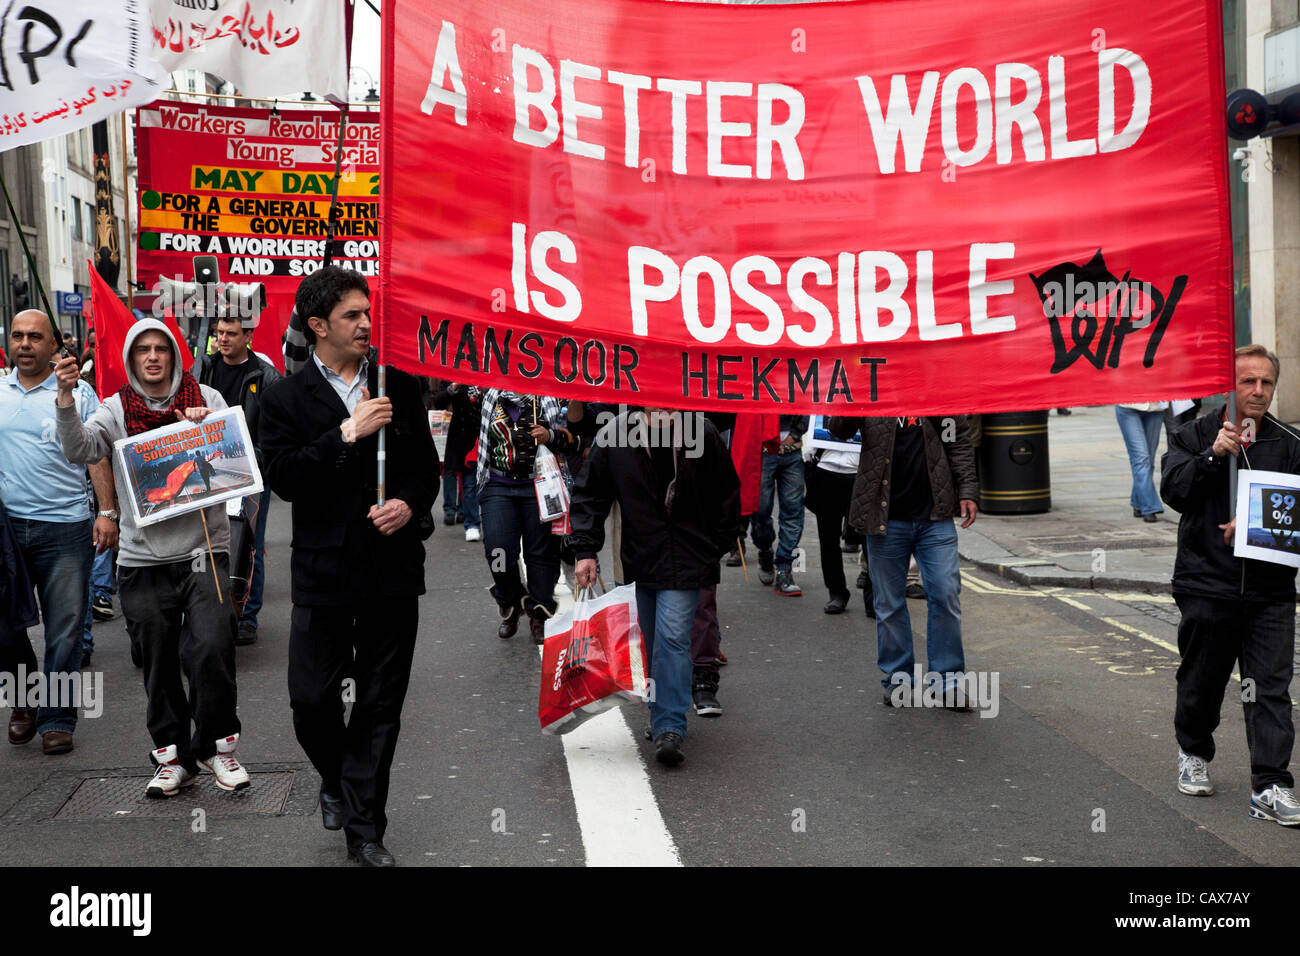 London, UK. 1 May, 2012. Demonstration by unions and other organisations of workers to mark the annual May Day or - Stock Image